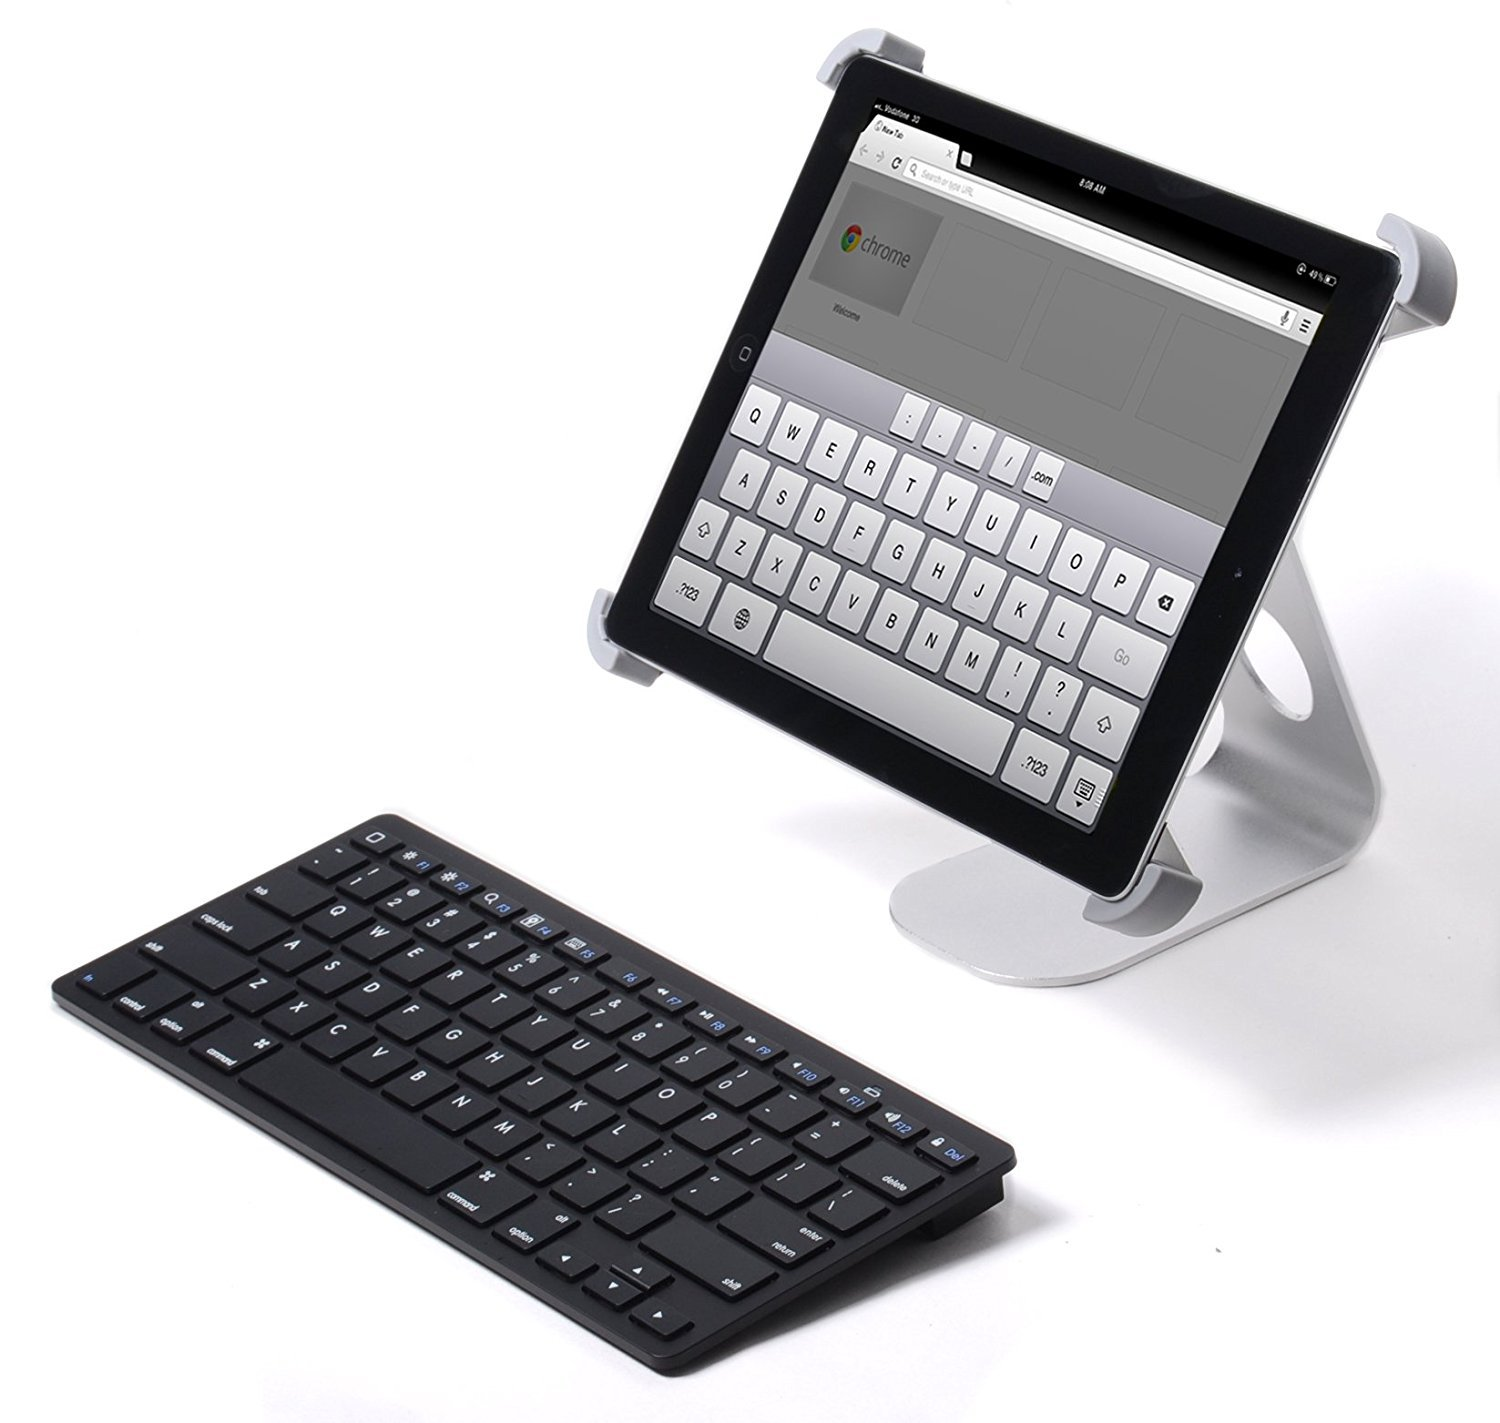 External Bluetooth Keyboard For Android Phone: Pwr External Slim Wireless Keyboard For Tablet Apple Android Fits Hd Hdx Ipad Iphone